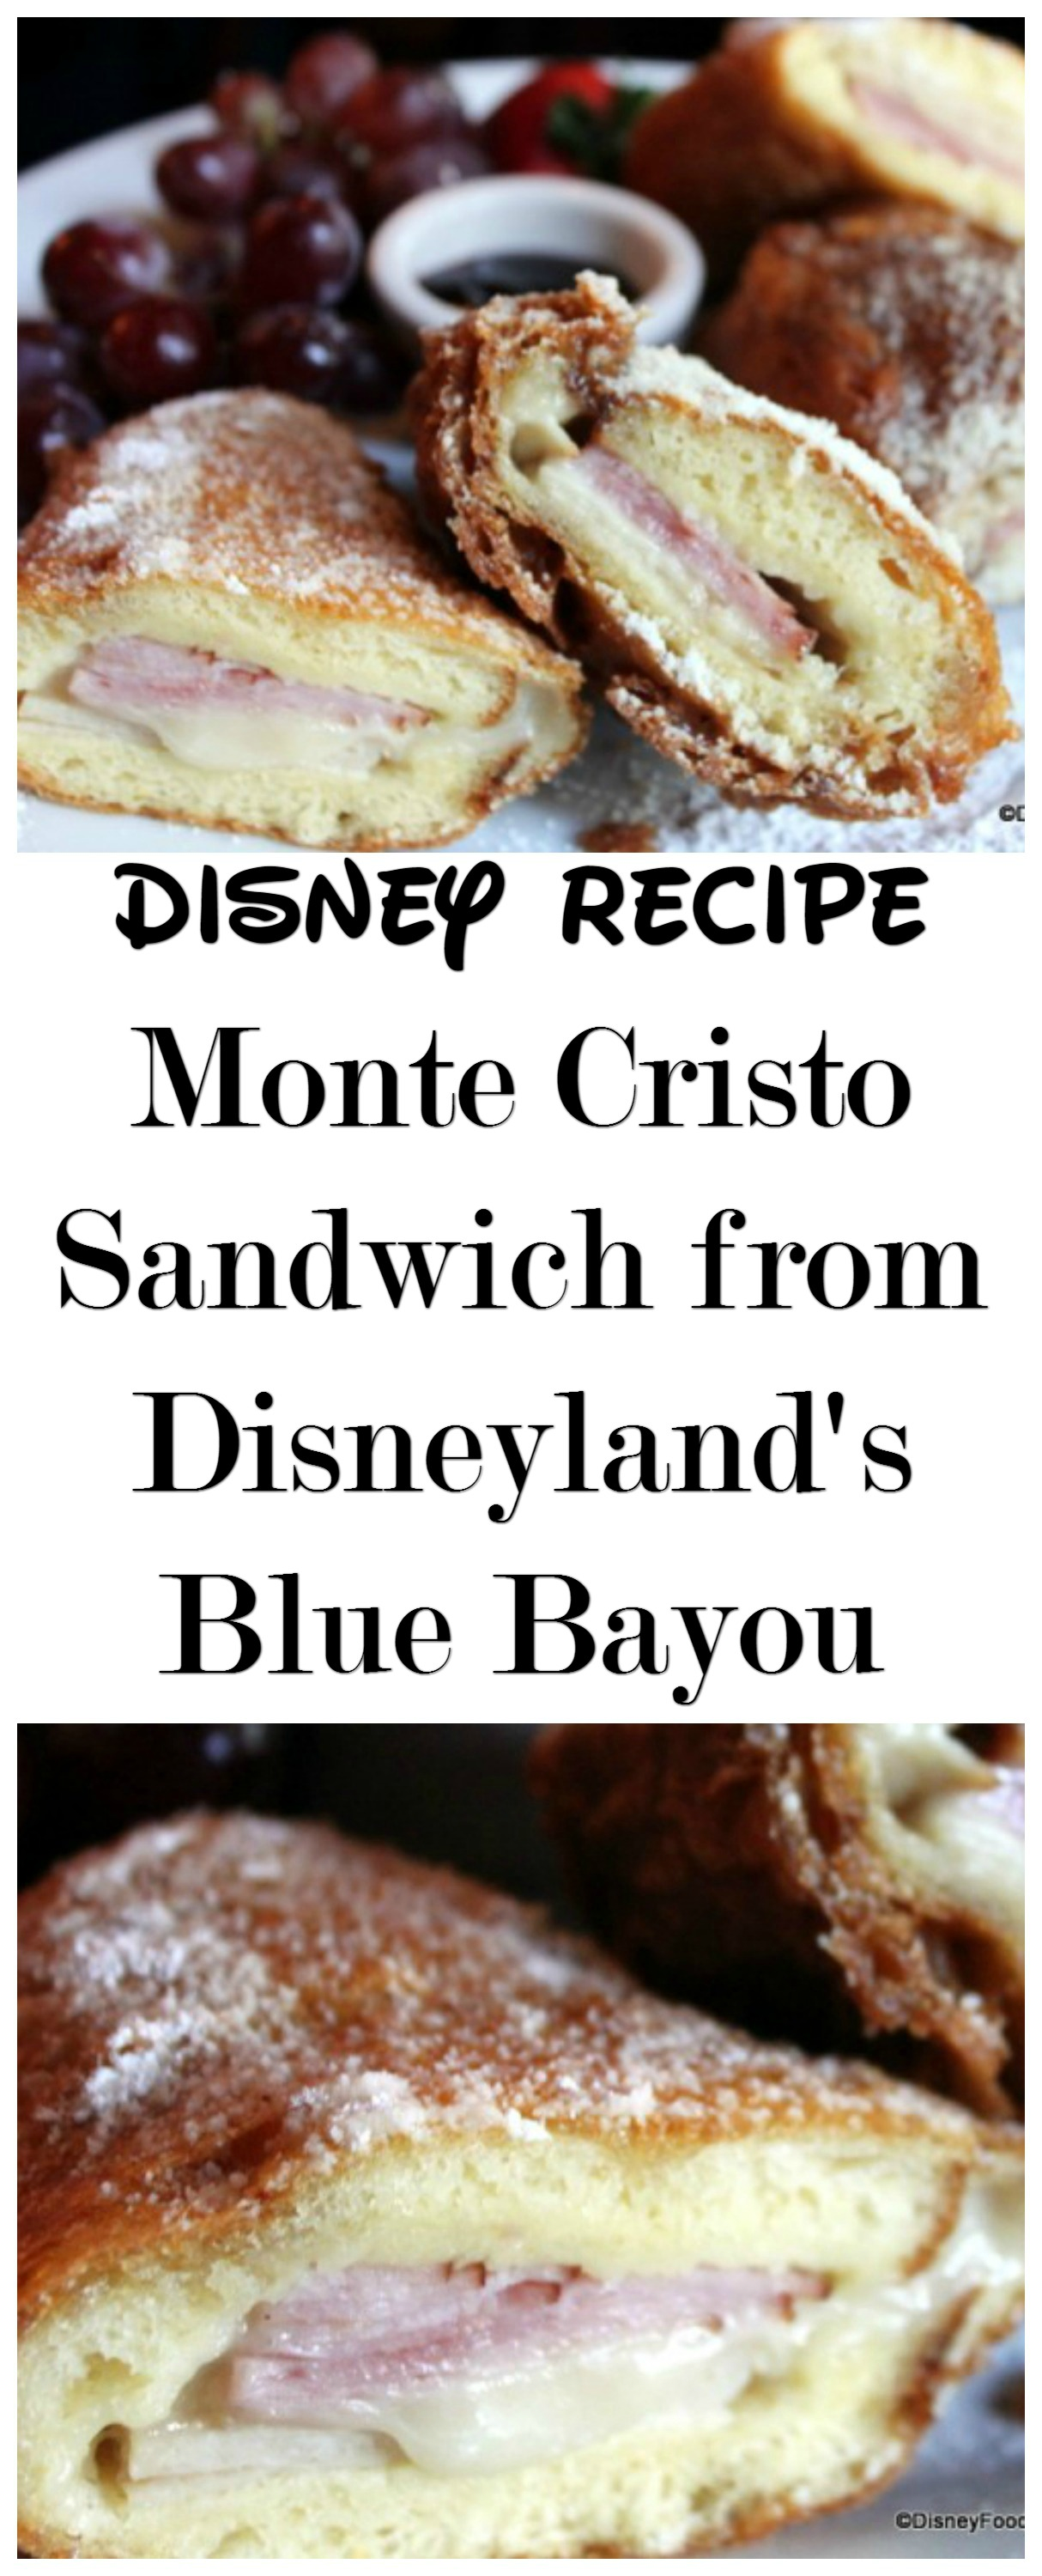 Get the Disney Recipe for the Monte Cristo Sandwich from Disneyland's Blue Bayou!